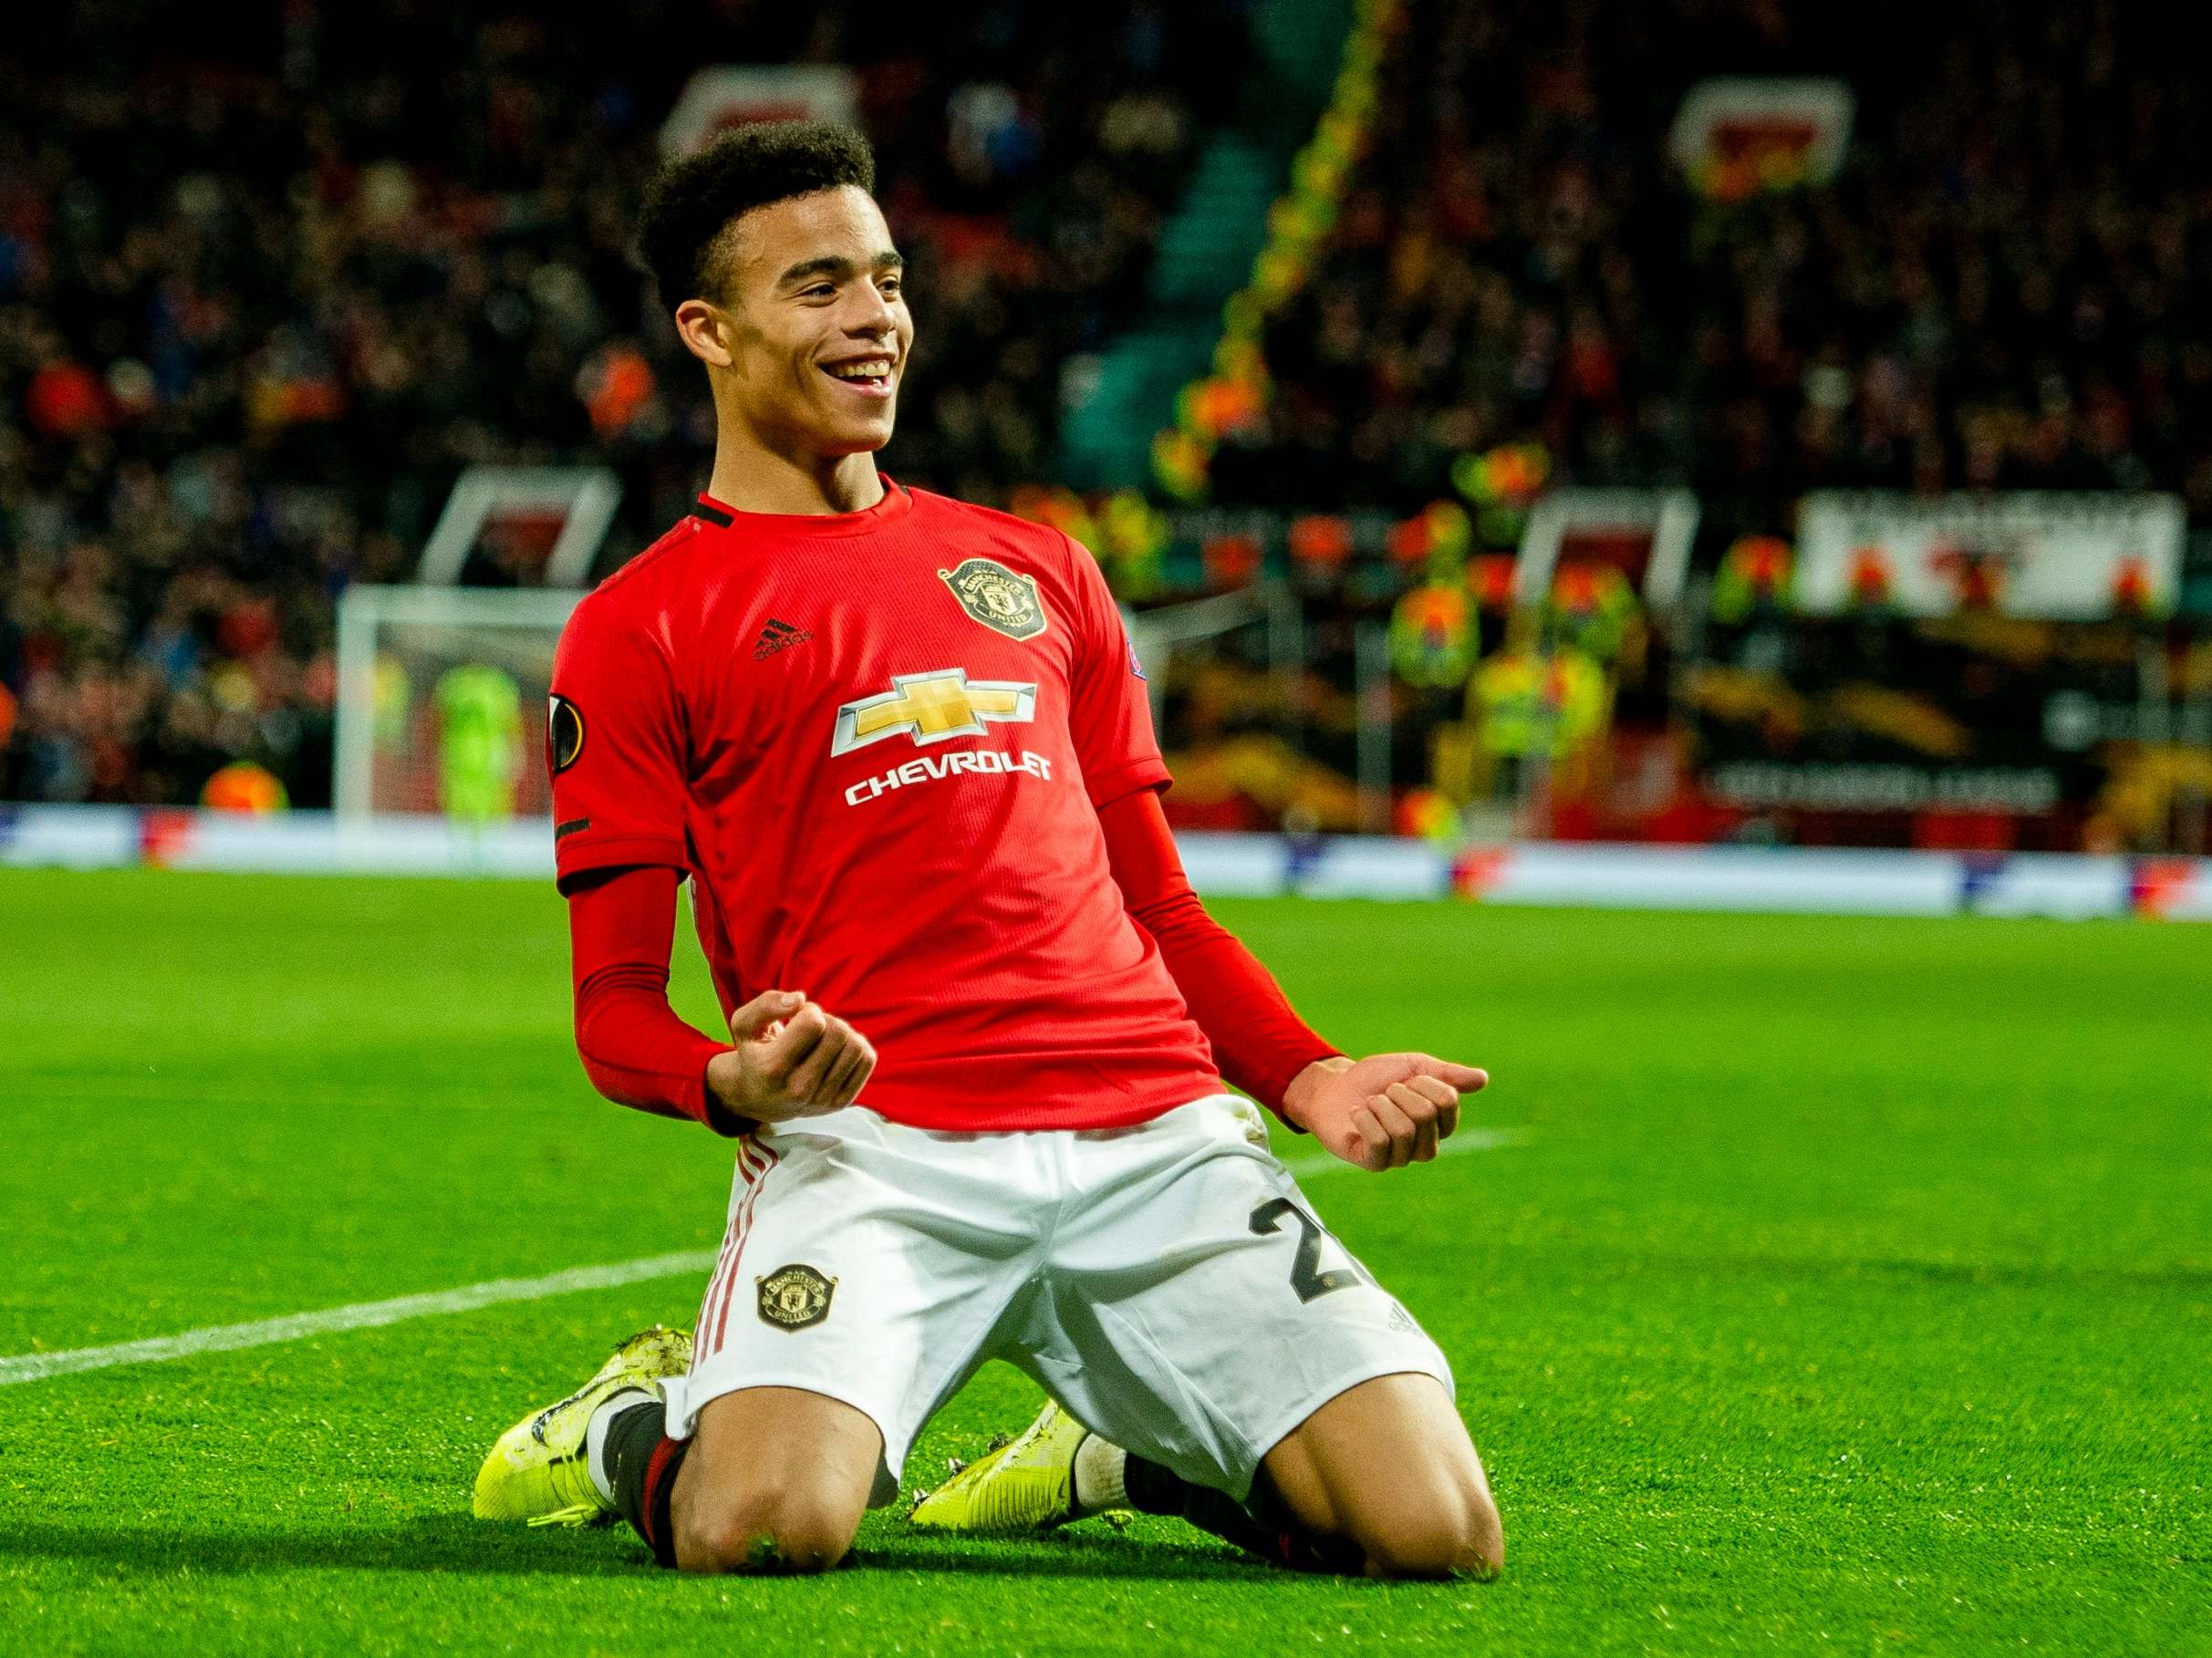 How Mason Greenwood has left Ole Gunnar Solskjaer with no reason not to trust him